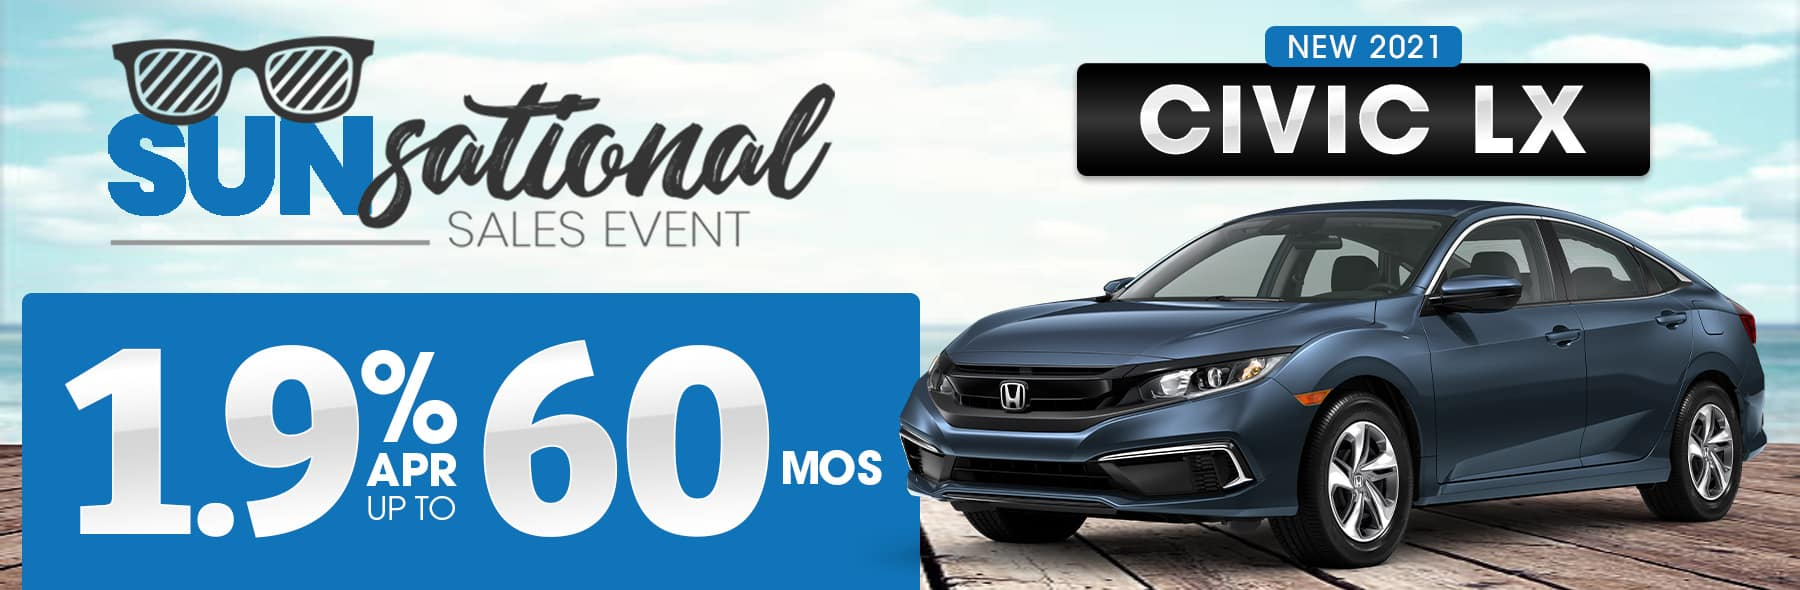 IGH-July21-HP-Offers-v21Civic